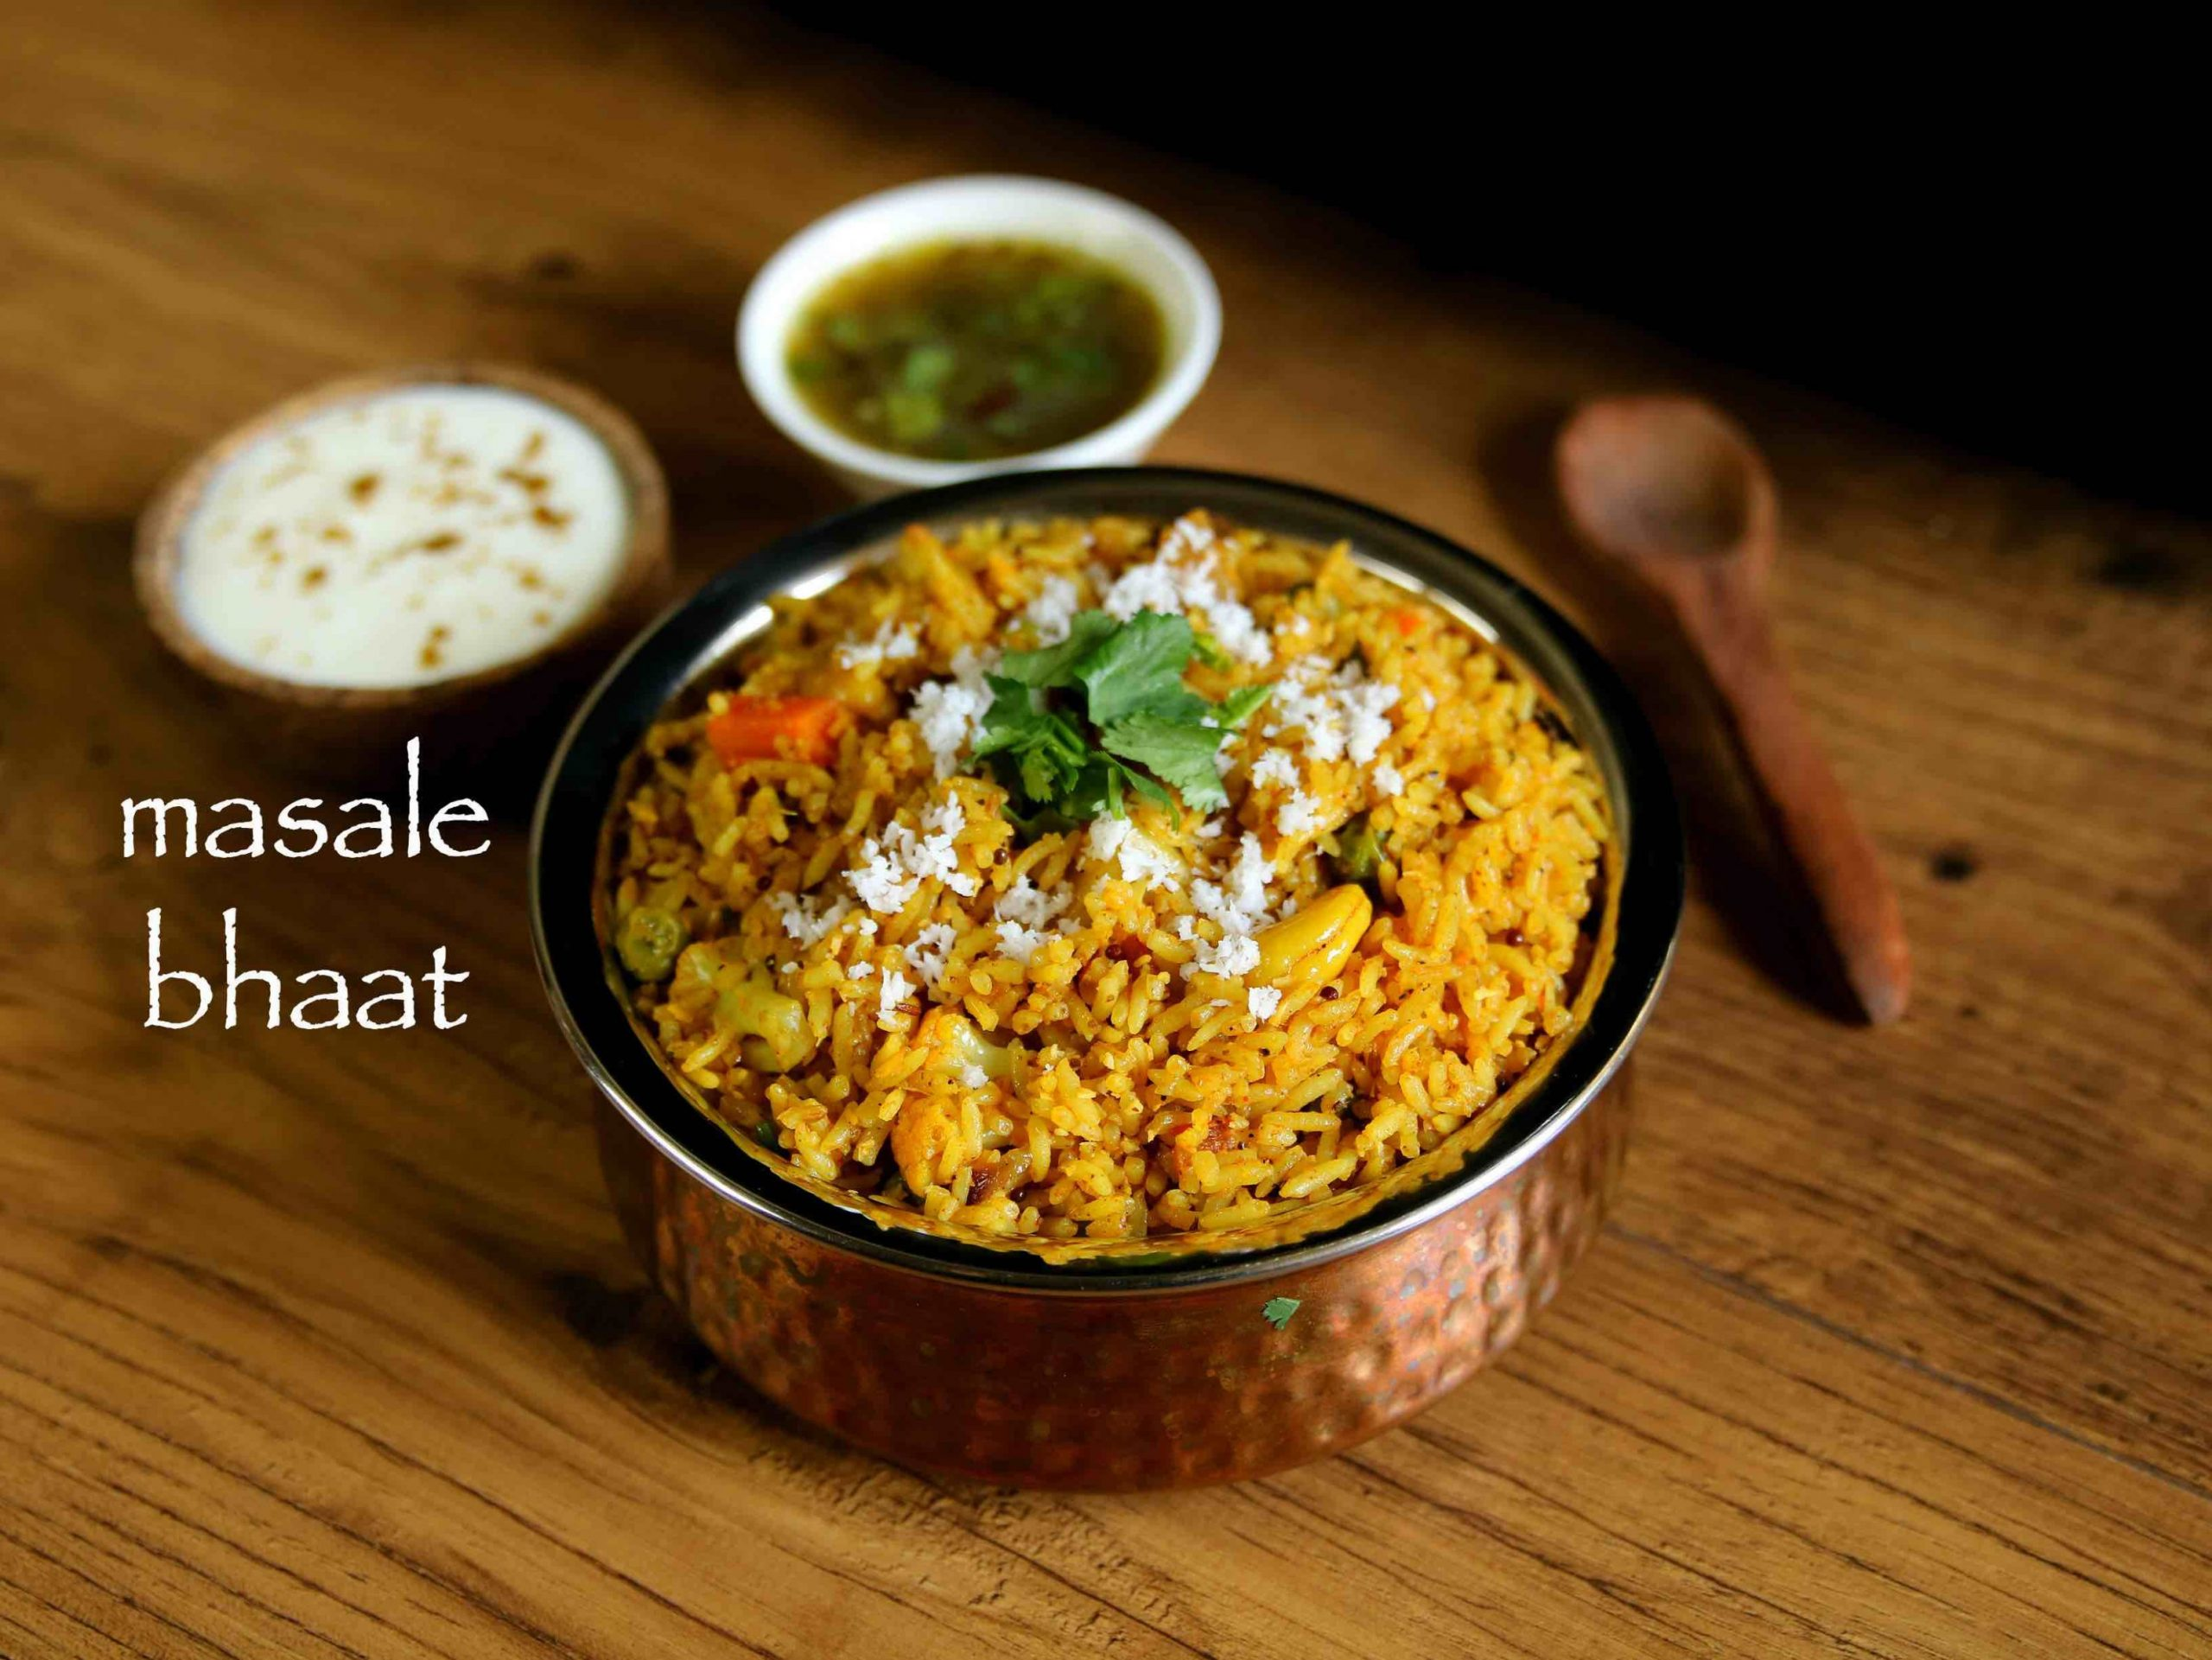 masale bhat recipe | masala bhaat | maharashtrian masala bhaath - Rice Recipes Marathi